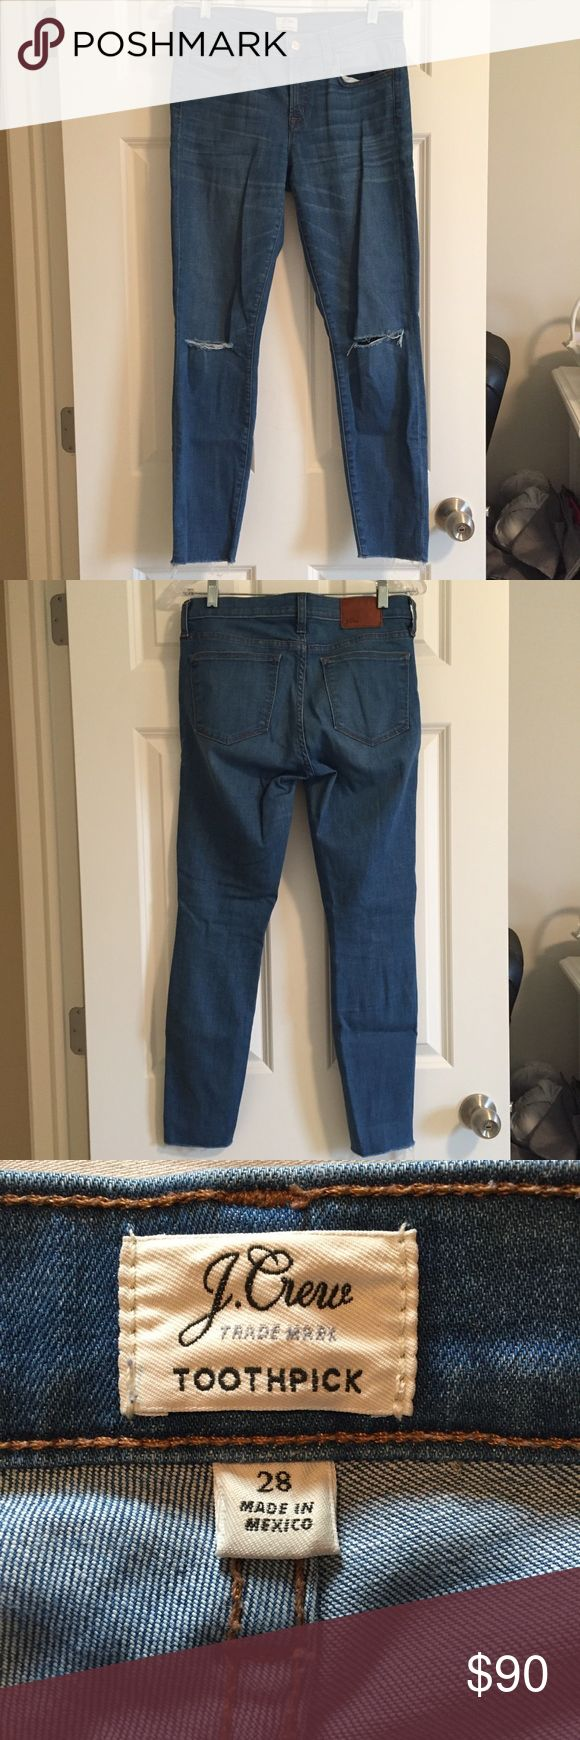 "Gently used JCrew toothpick jean size 28 Worn less than 10 times. Skinny jeans with cut knees and a raw hem from J Crew. These are the ""toothpick"" jean from spring/summer 2016 in a light wash. Size 28. J. Crew Pants Skinny"